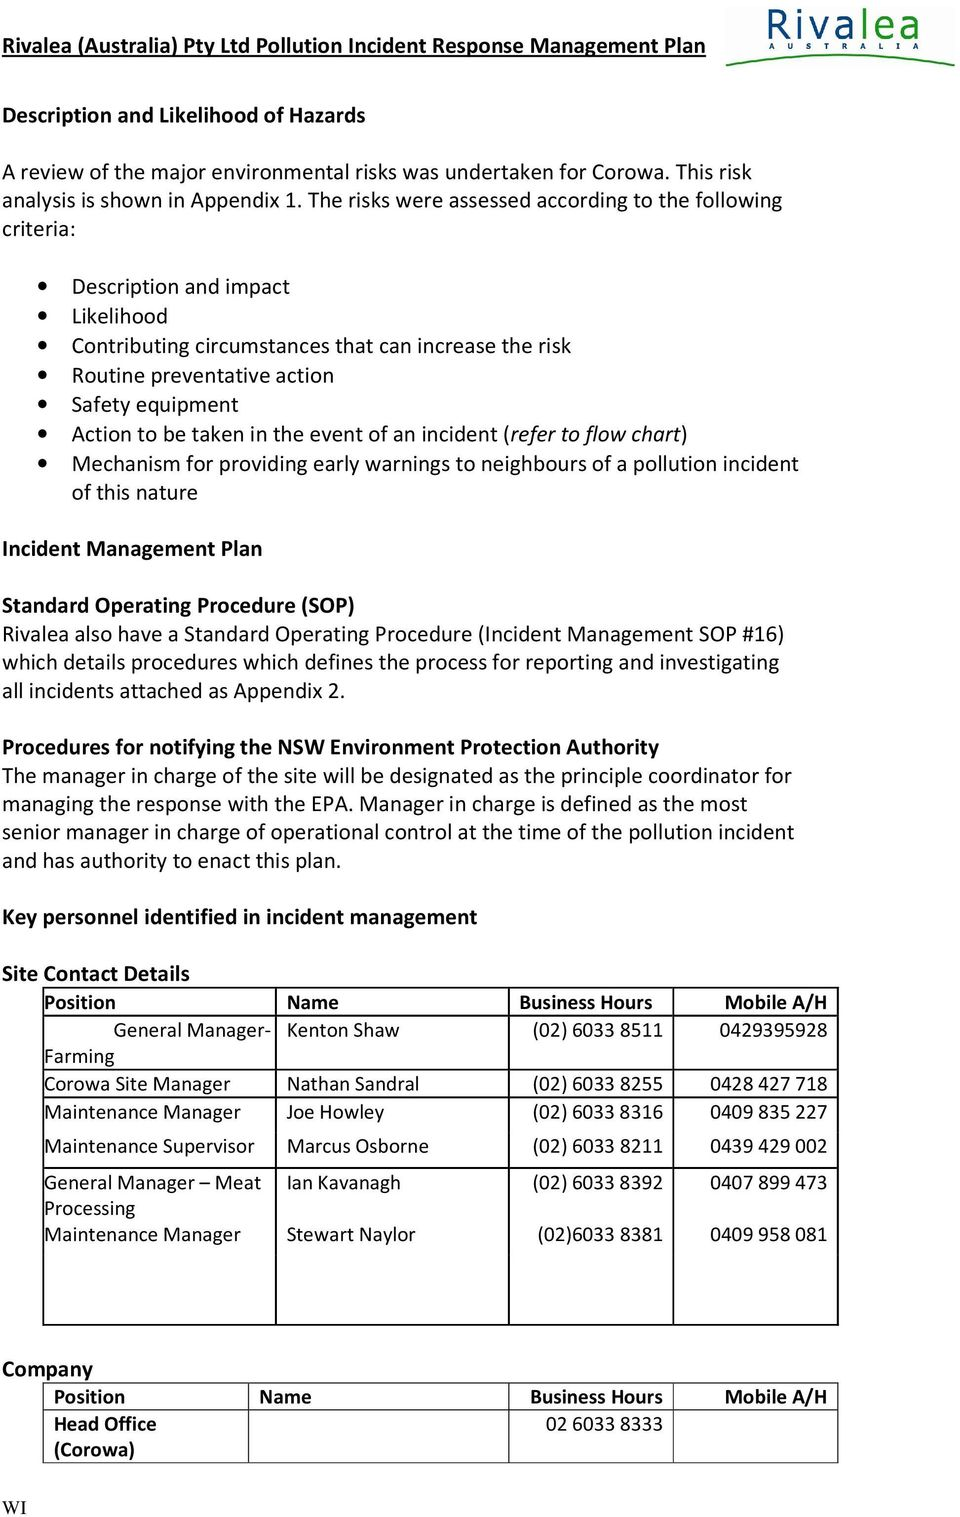 Rivalea Australia Pty Ltd Pollution Incident Response Management S Op Process Flow Chart Action To Be Taken In The Event Of An Refer